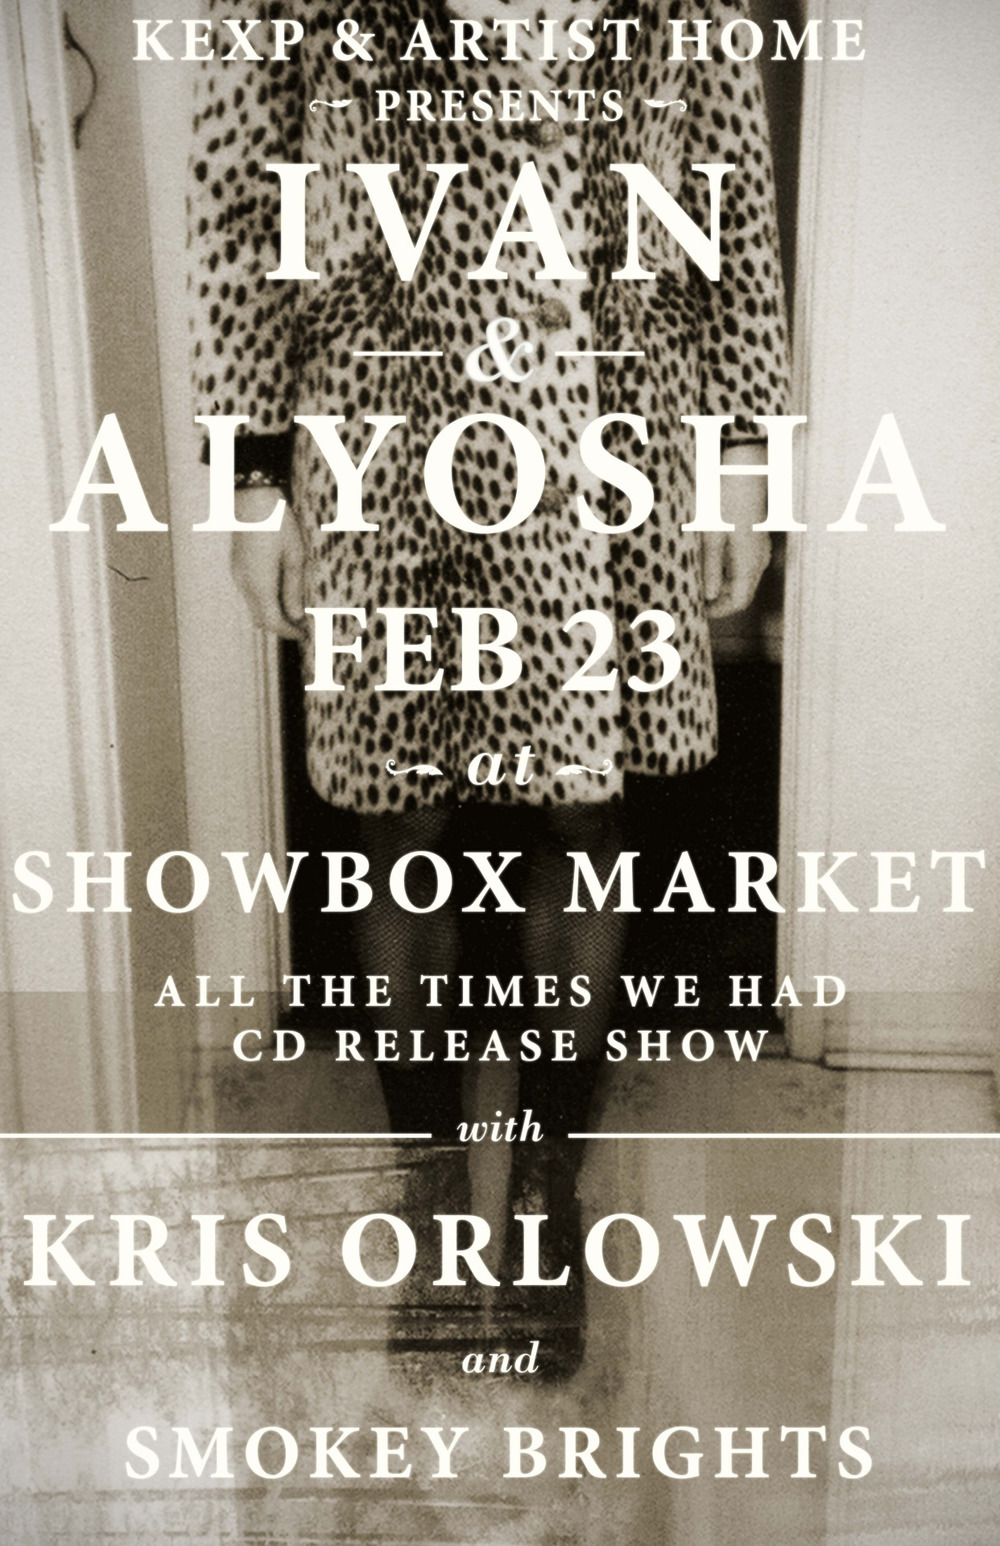 "Seattle! KEXP and Artist Home Present Ivan & Alyosha's Album Release Show w/ Kris Orlowski, Smokey Brights, & Passenger String Quartet!!! Show is February 23rd at Showbox Market and is All Ages!!! Online Pre-Sale goes up THURSDAY (today) at 10!!! (Password is kexp or Showbox) Presale Link - http://bit.ly/IvanAlyShowbx Help us spread the word! Can't wait for our debut full length ""All The Times We Had"" on MIssing Piece / Dualtone Records to come out Tuesday, February 26th!!! It's been a long time coming, appreciate all of you who have stuck with us and continue to support and inspire what we do. I&A"